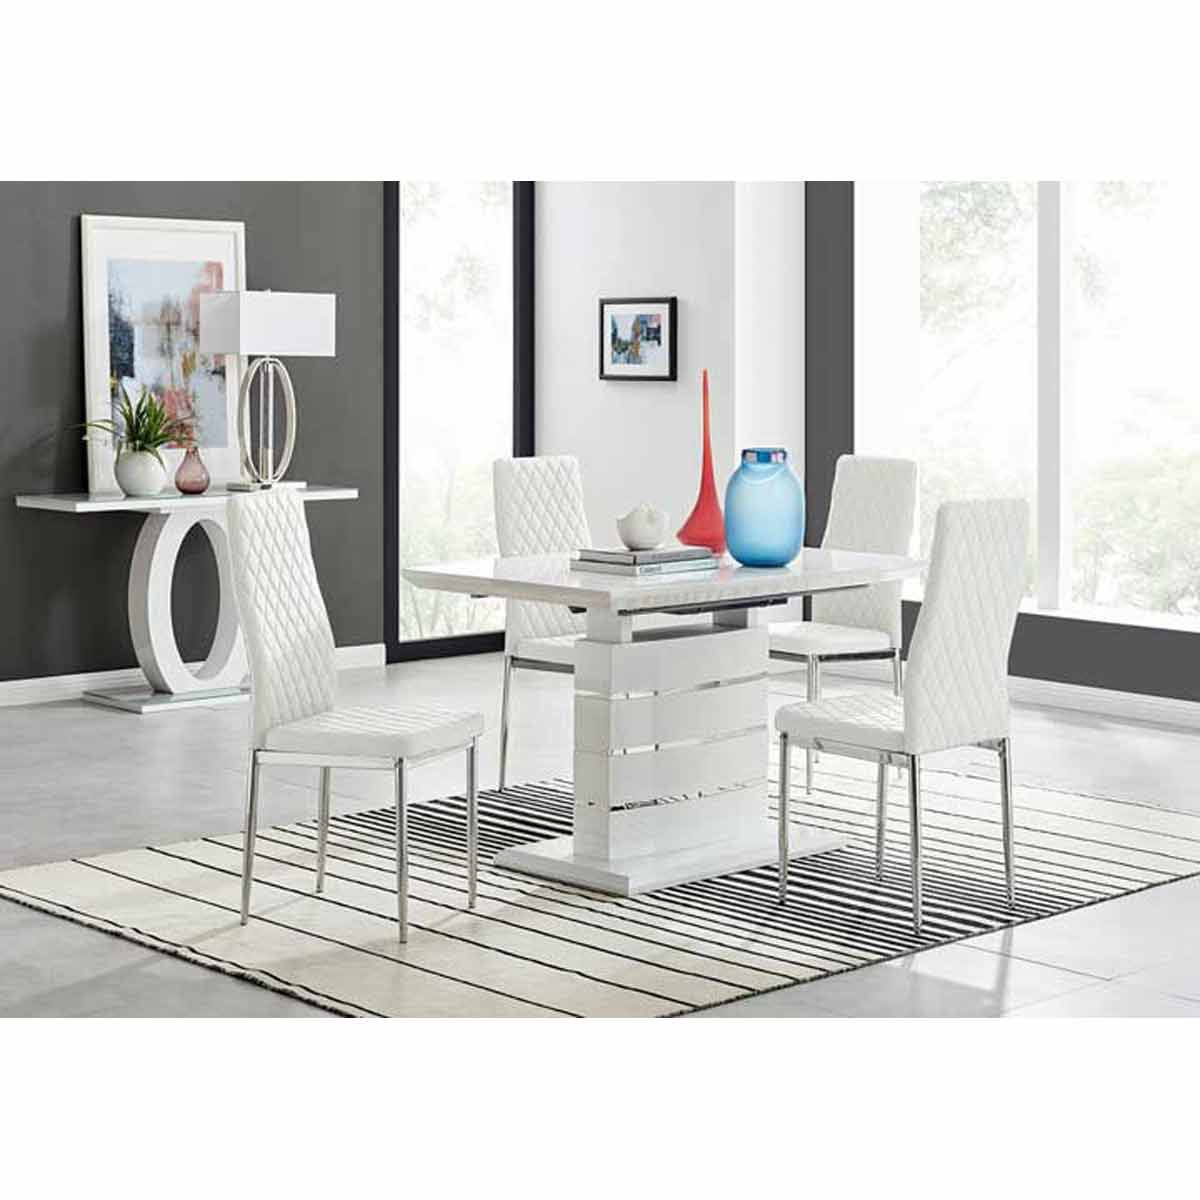 Furniture Box Renato 120cm High Gloss Extending Dining Table and 4 White Milan Chairs